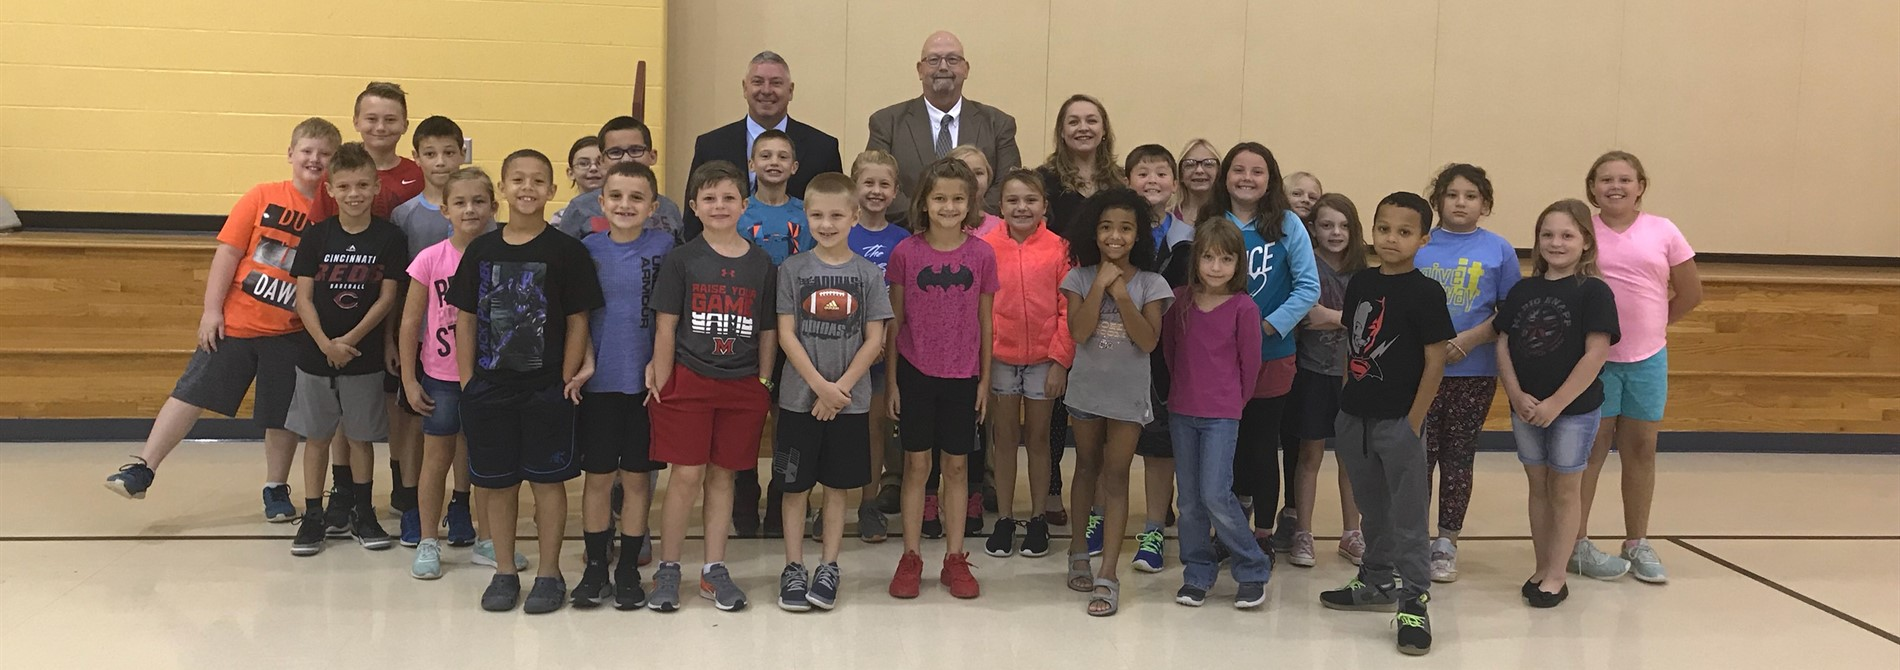 Local government officials visit 3rd grade.